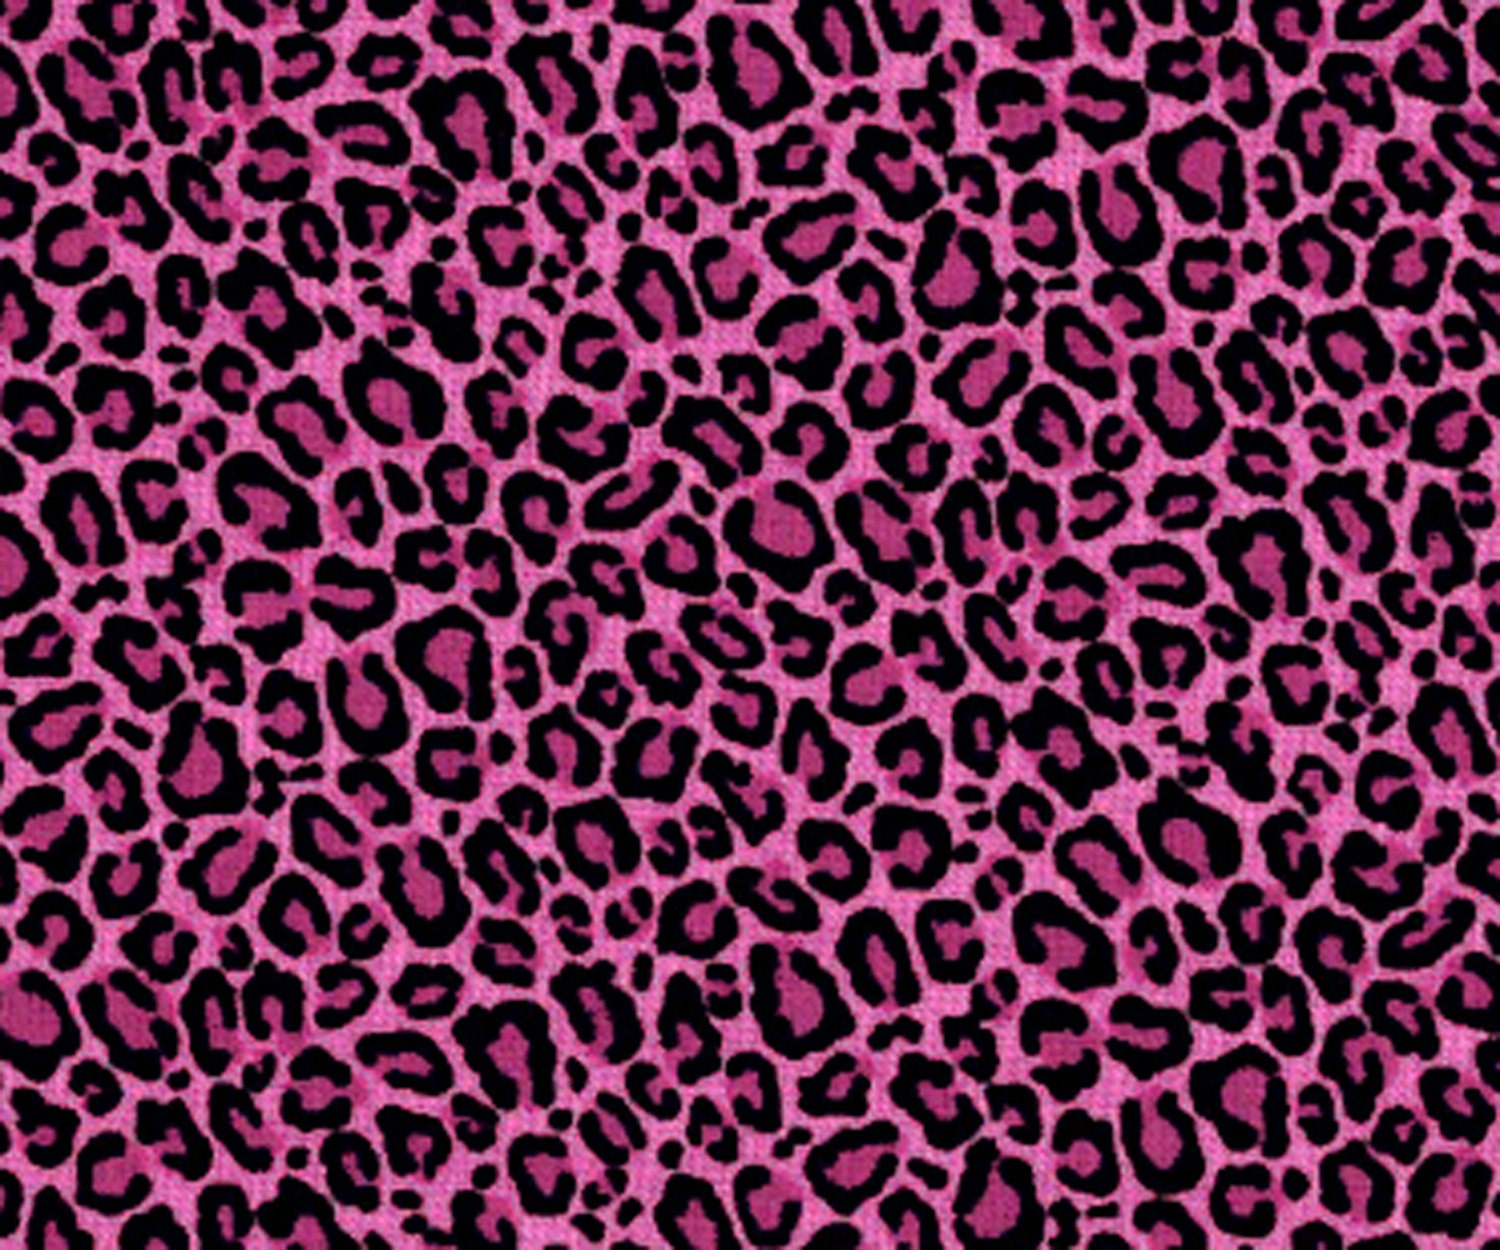 Light pink cheetah print background - photo#25